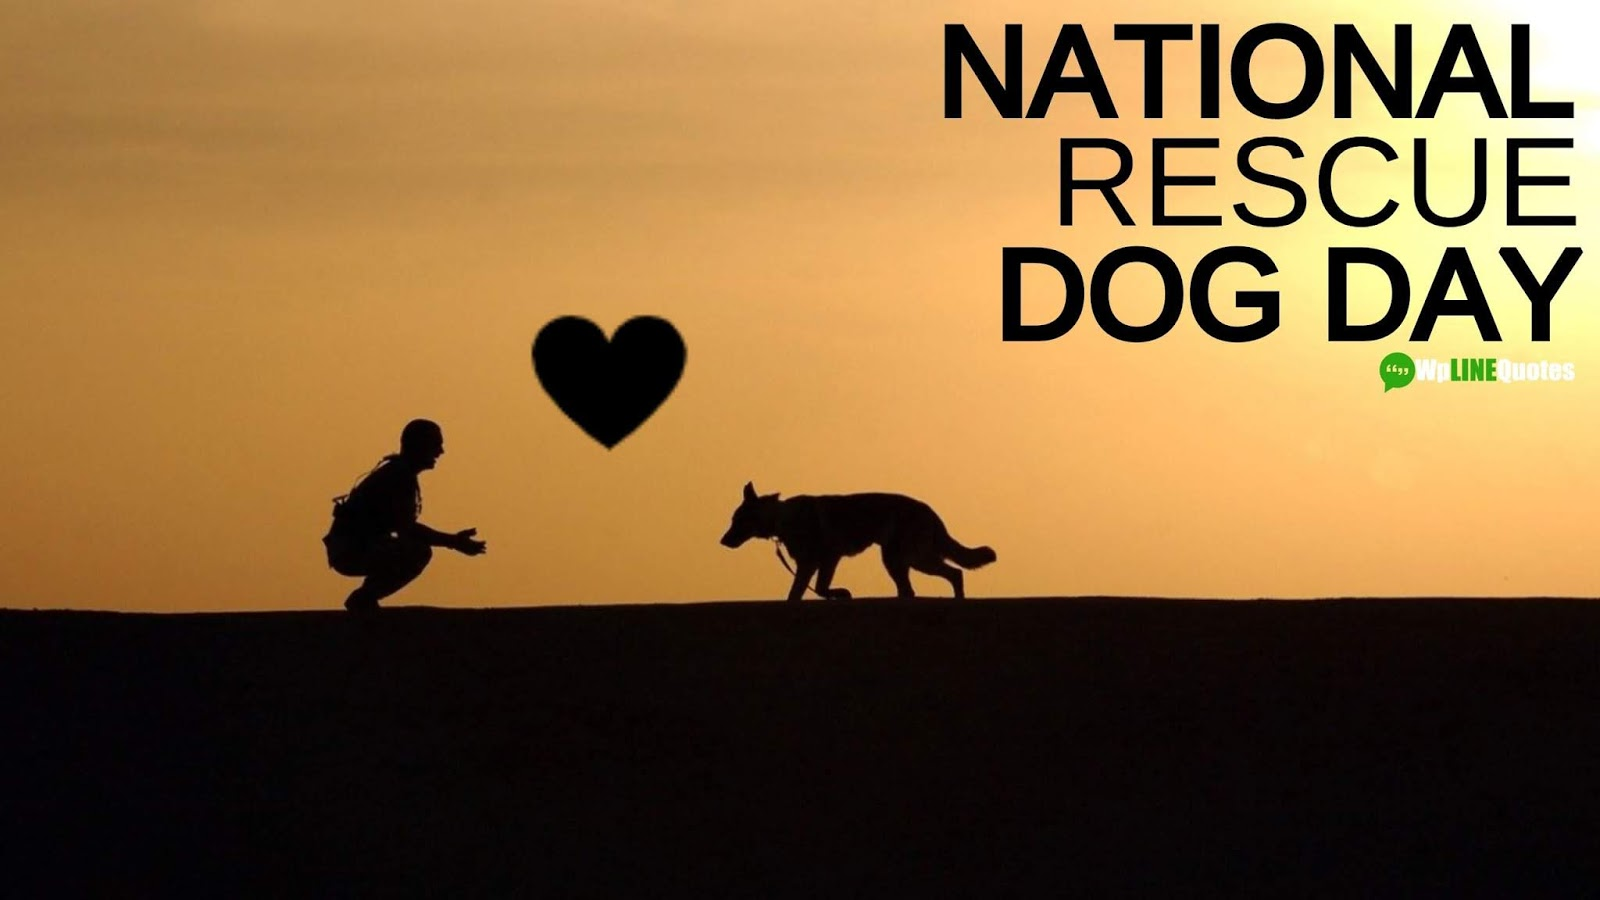 National Rescue Dog Day Quotes, Sayings & Images